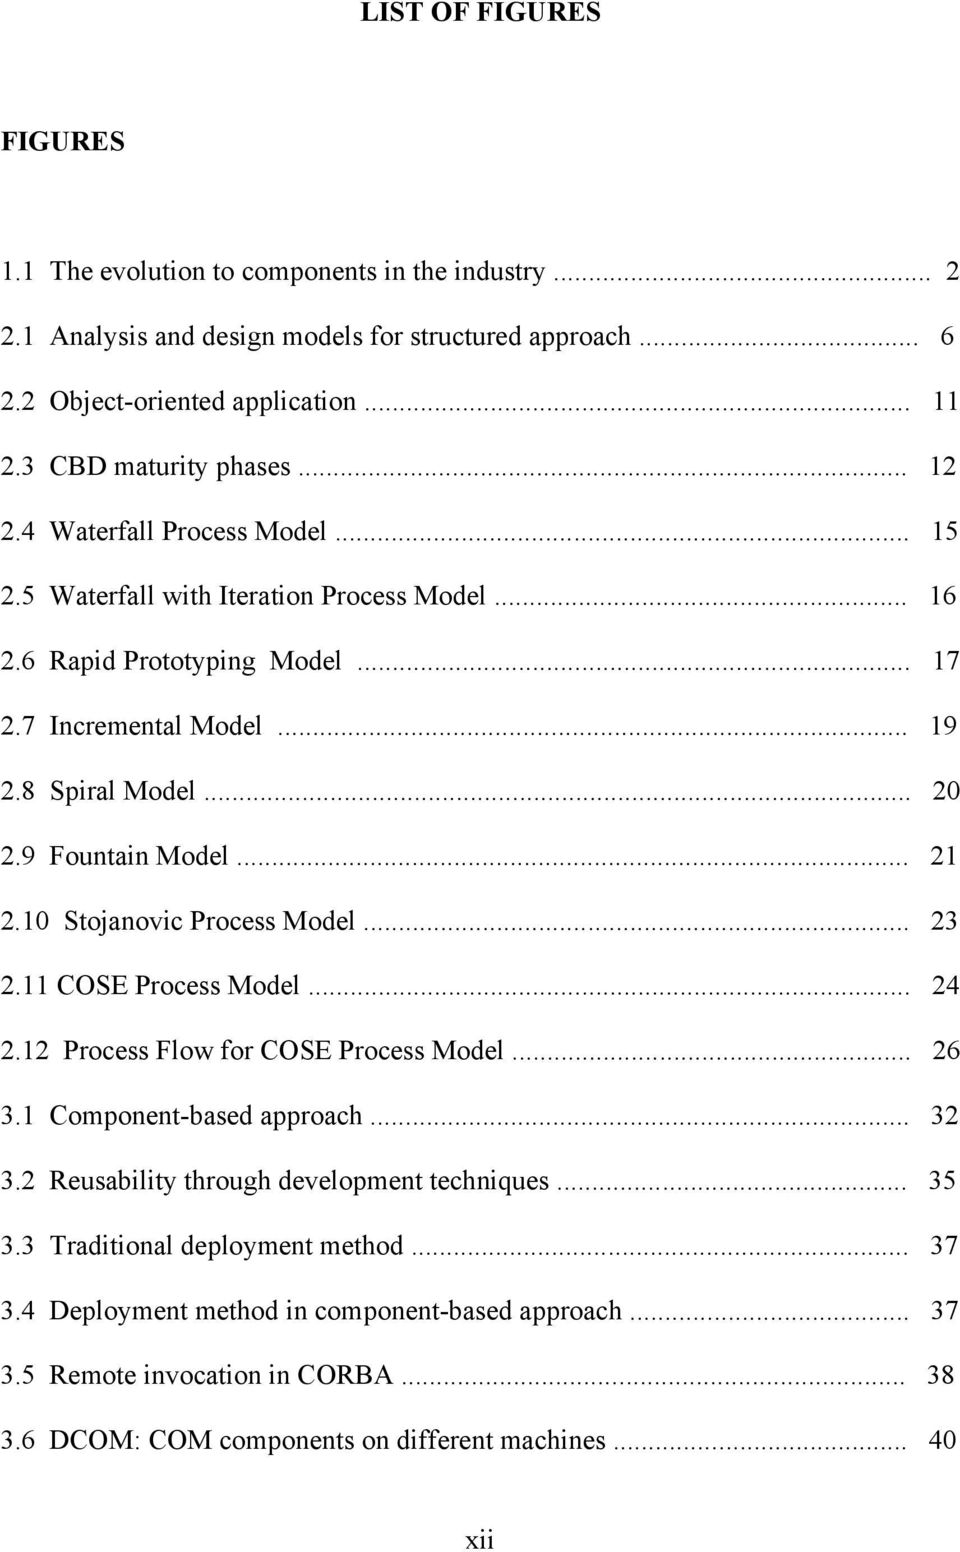 9 Fountain Model... 21 2.10 Stojanovic Process Model... 23 2.11 COSE Process Model... 24 2.12 Process Flow for COSE Process Model... 26 3.1 Component-based approach... 32 3.